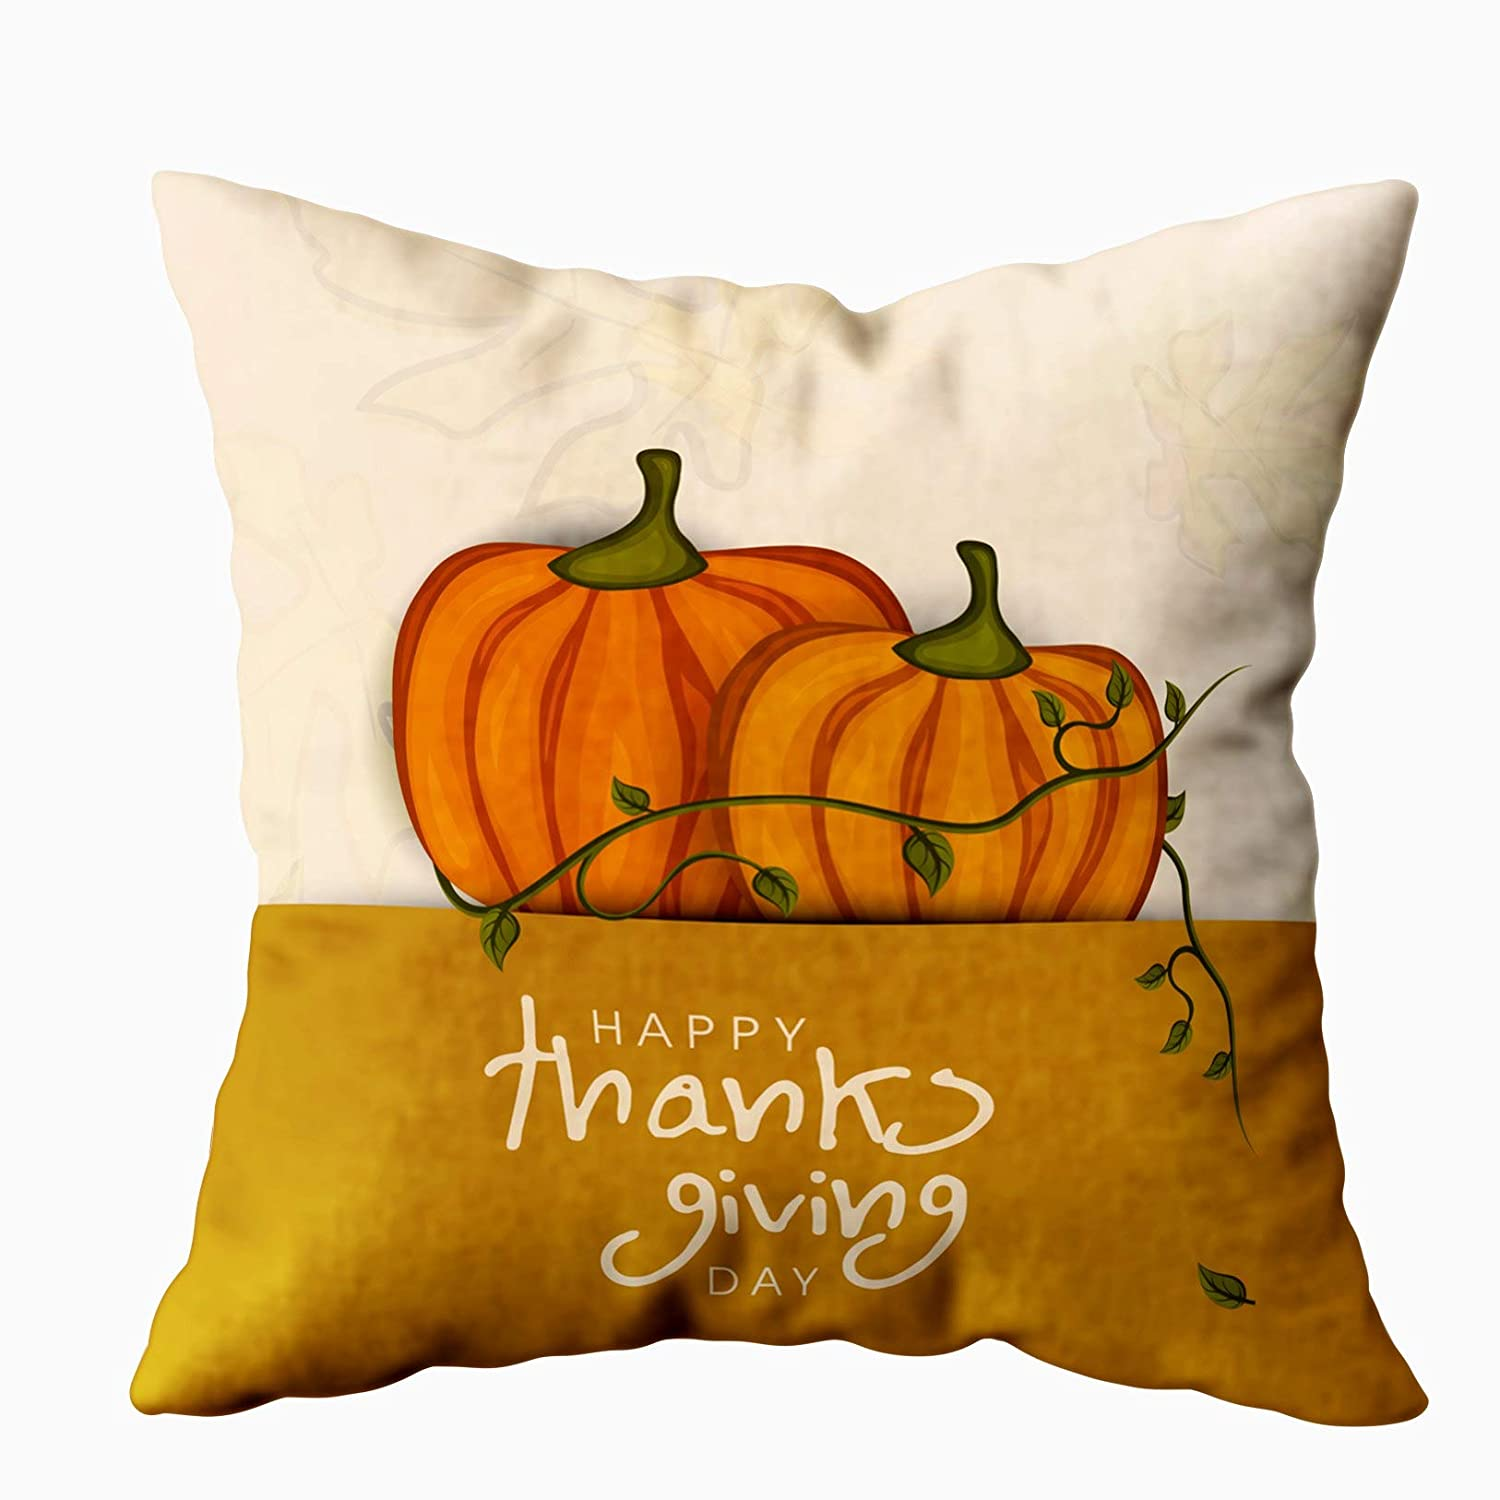 Astounding Emmteey Throw Pillows For Couch Pillow Covers 16X16 Pillow Covers Home Throw Pillow Covers Cushions Thanksgiving Day Concept Pumpkin Autumn For Caraccident5 Cool Chair Designs And Ideas Caraccident5Info